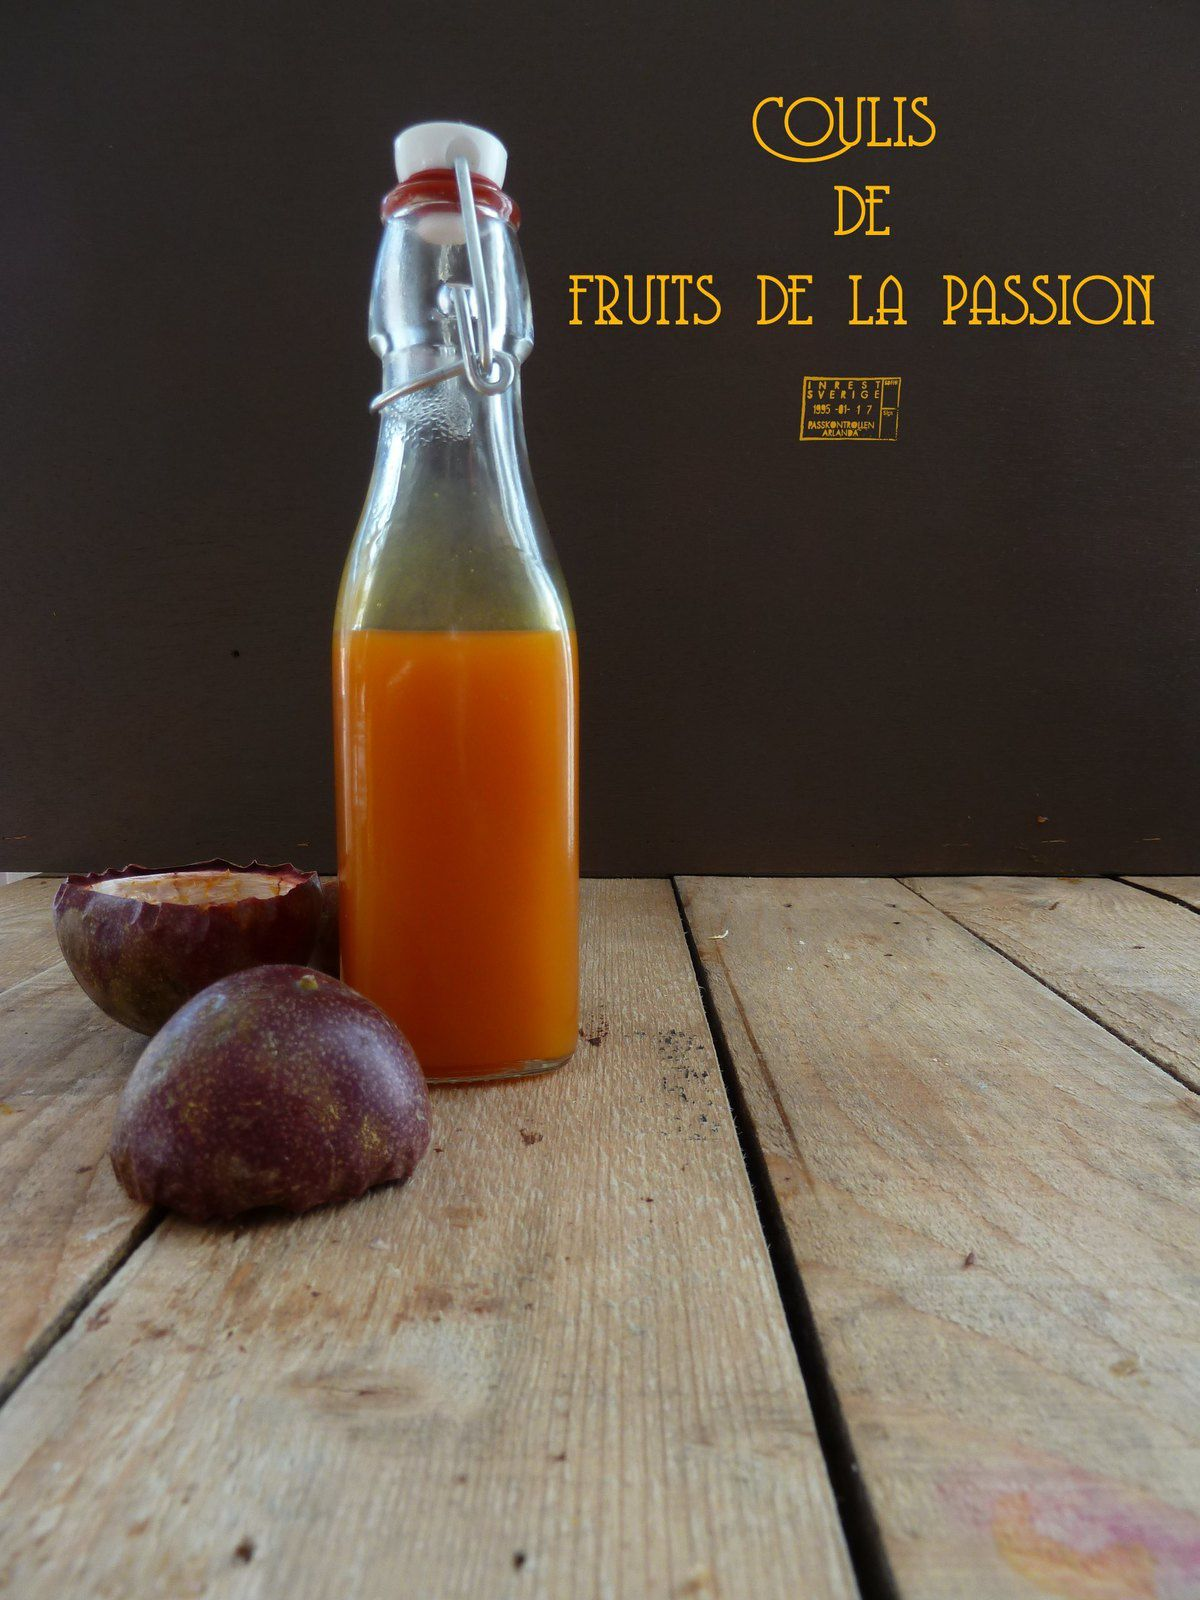 Coulis de fruits de la passion